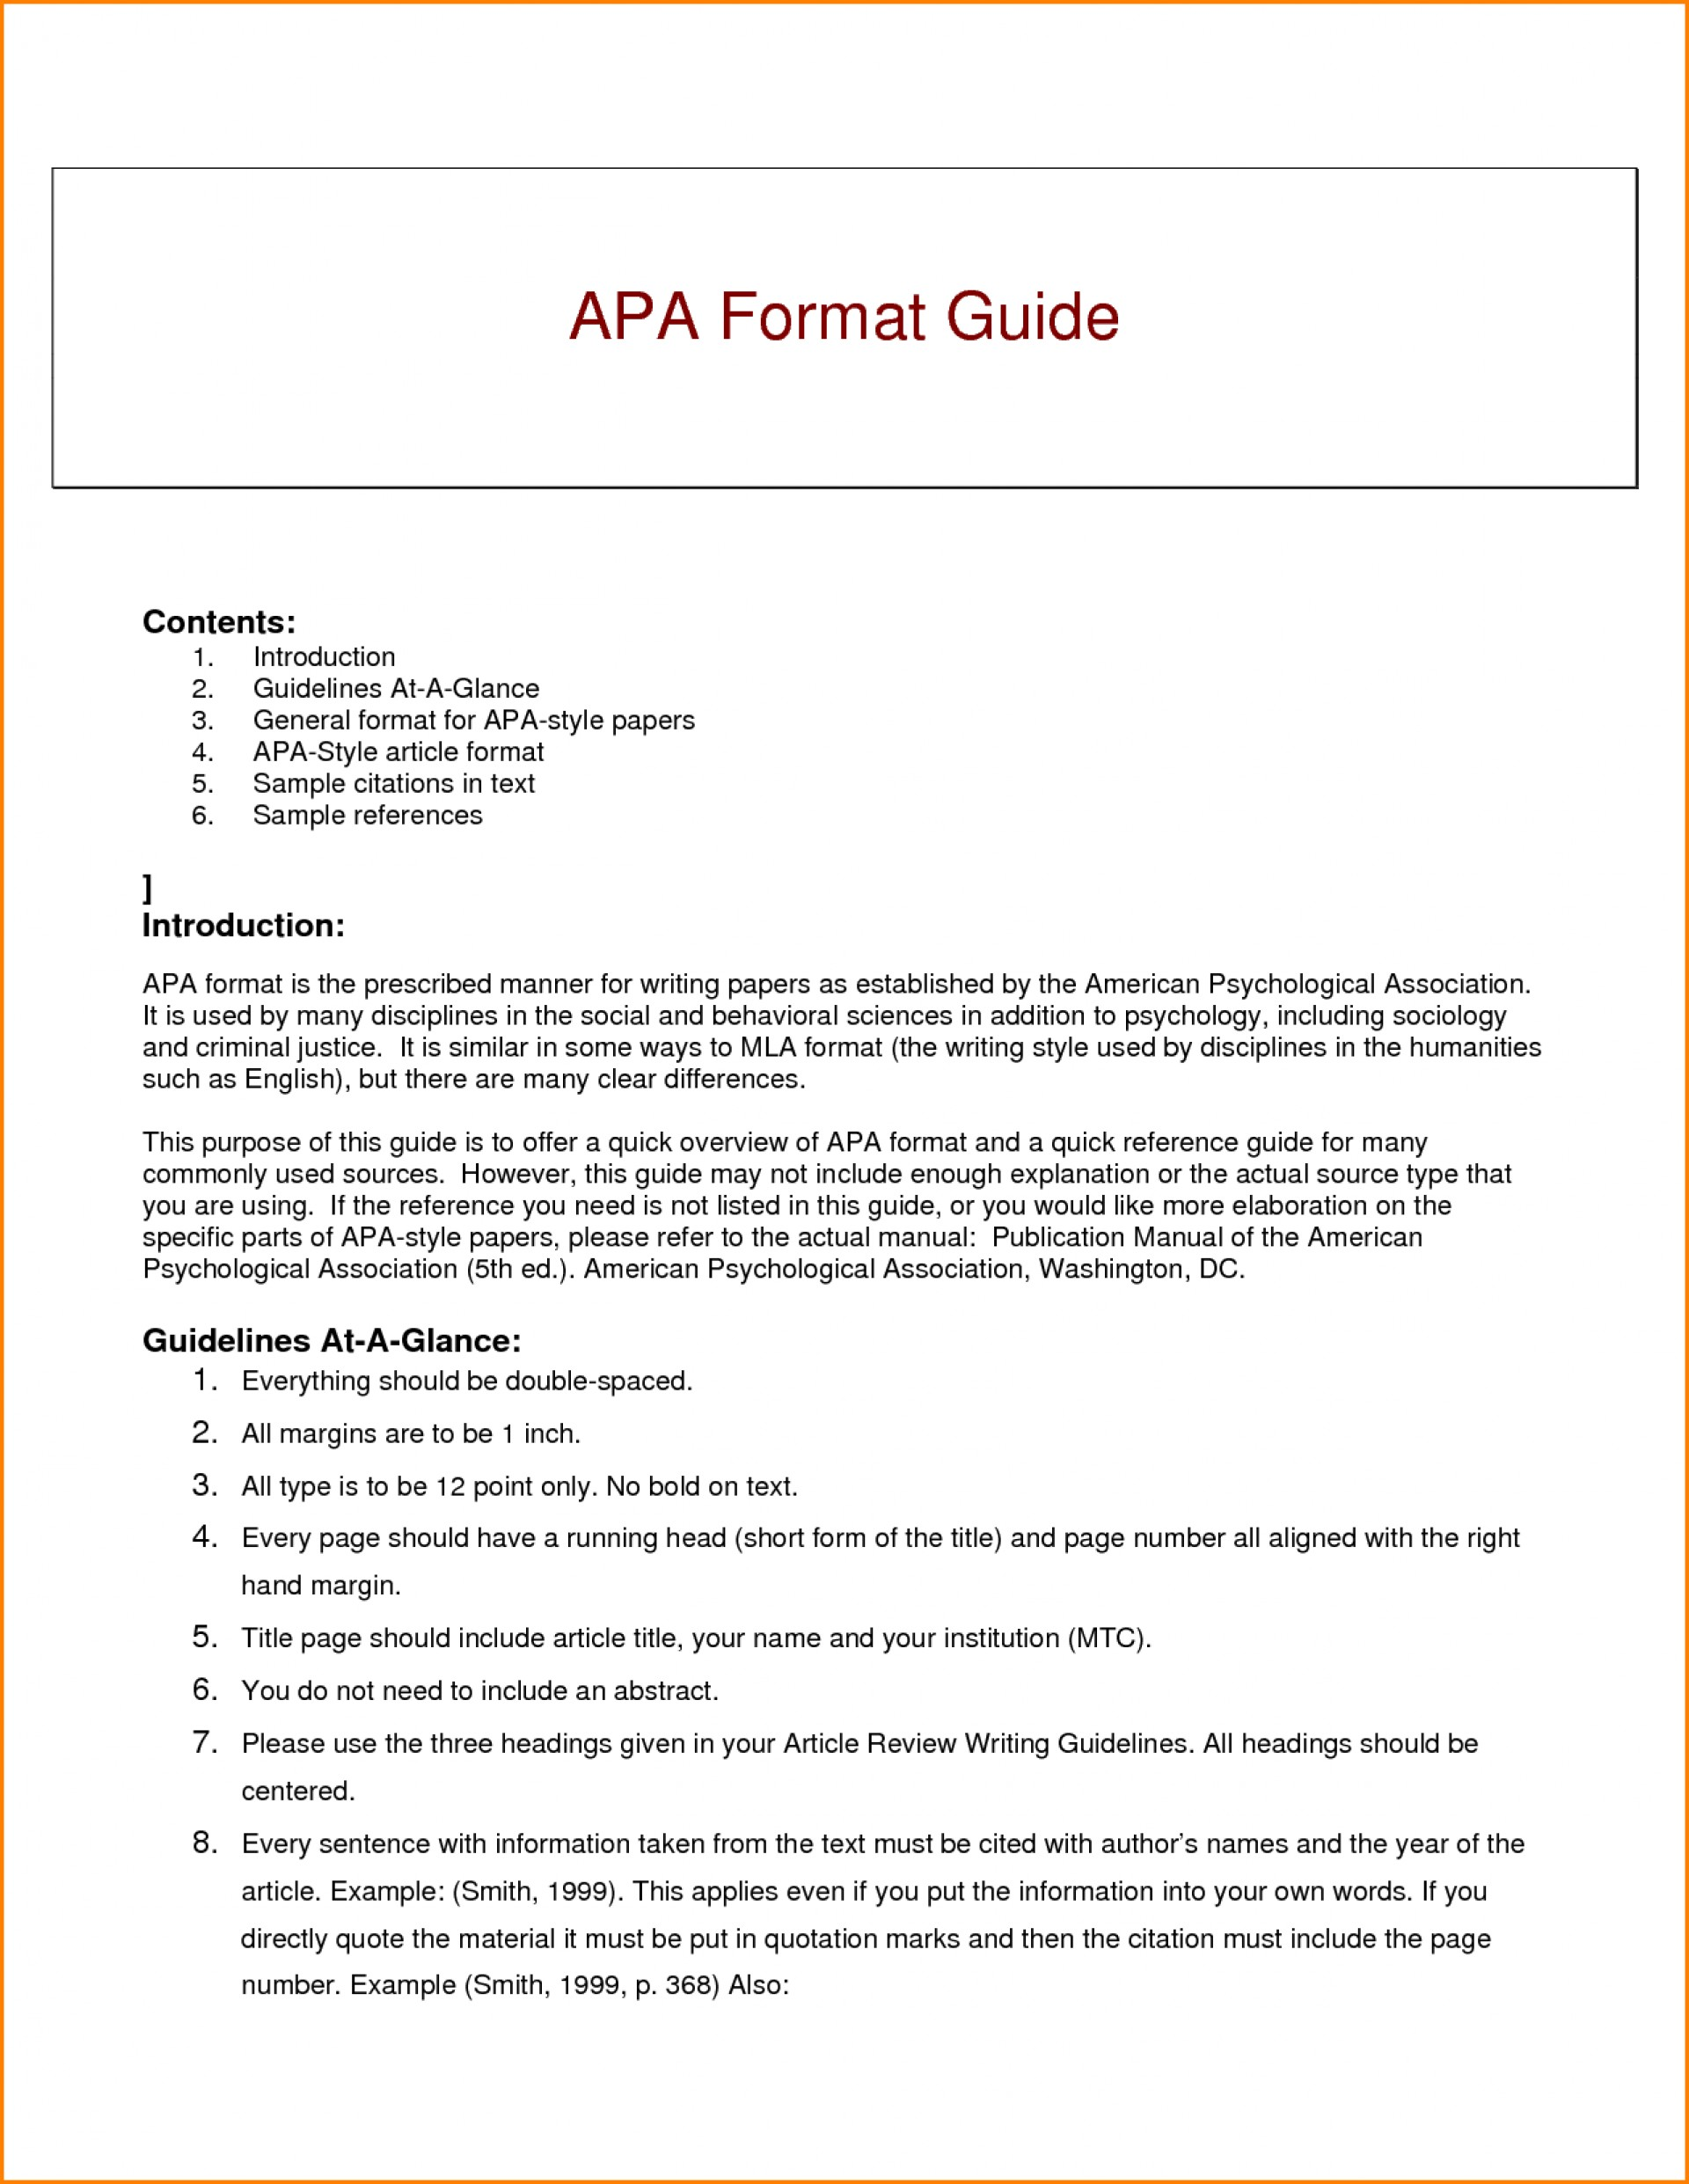 018 How Do I Cite Research Paper In Apa Format Staggering A To Sources 1920